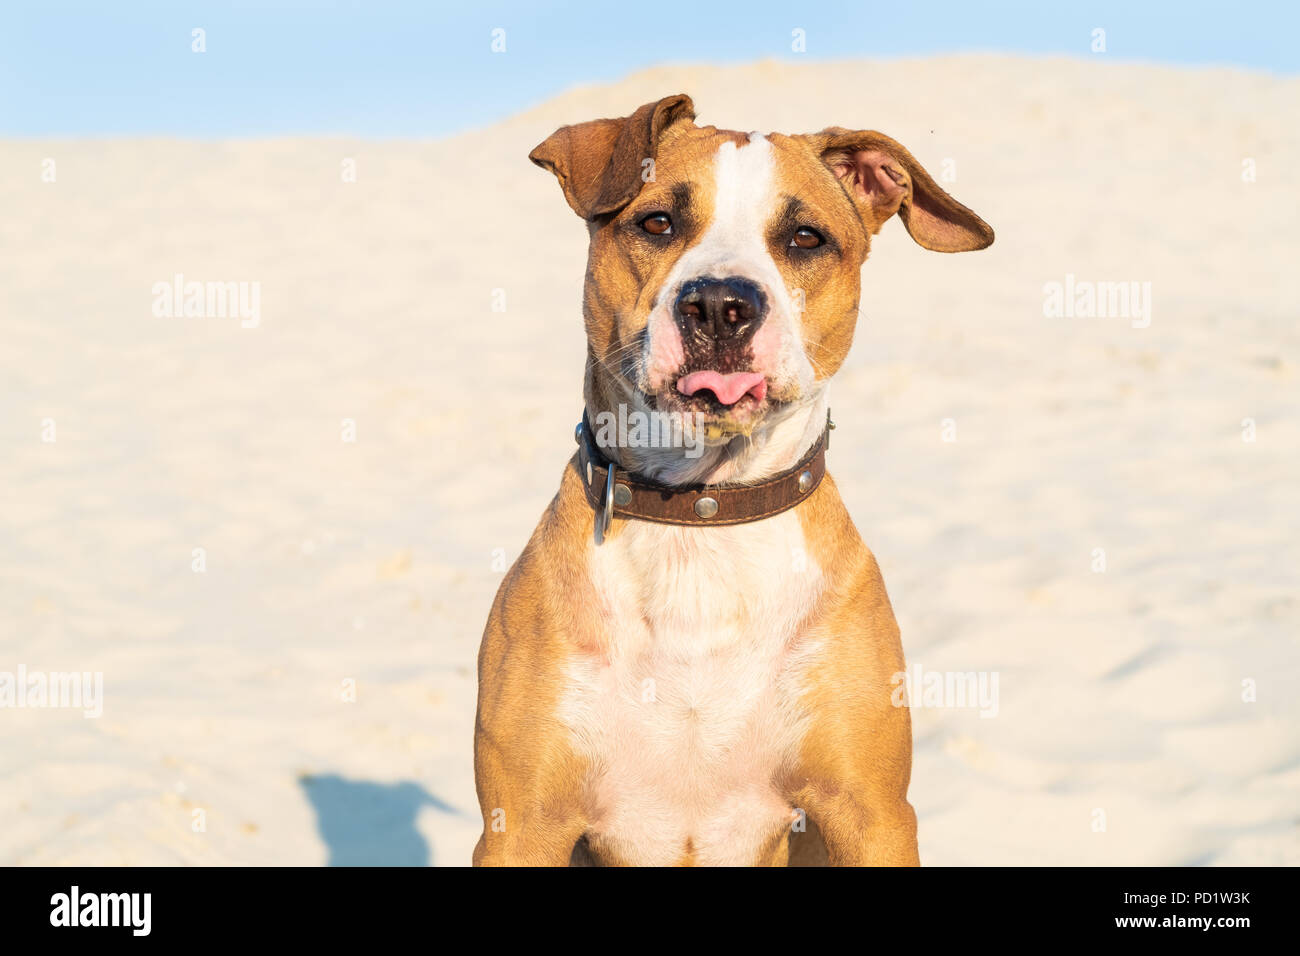 Funny dog sits in sand outdoors with tongue out. Cute staffordshire terrier puppy in sandy beach or desert on hot summer day - Stock Image